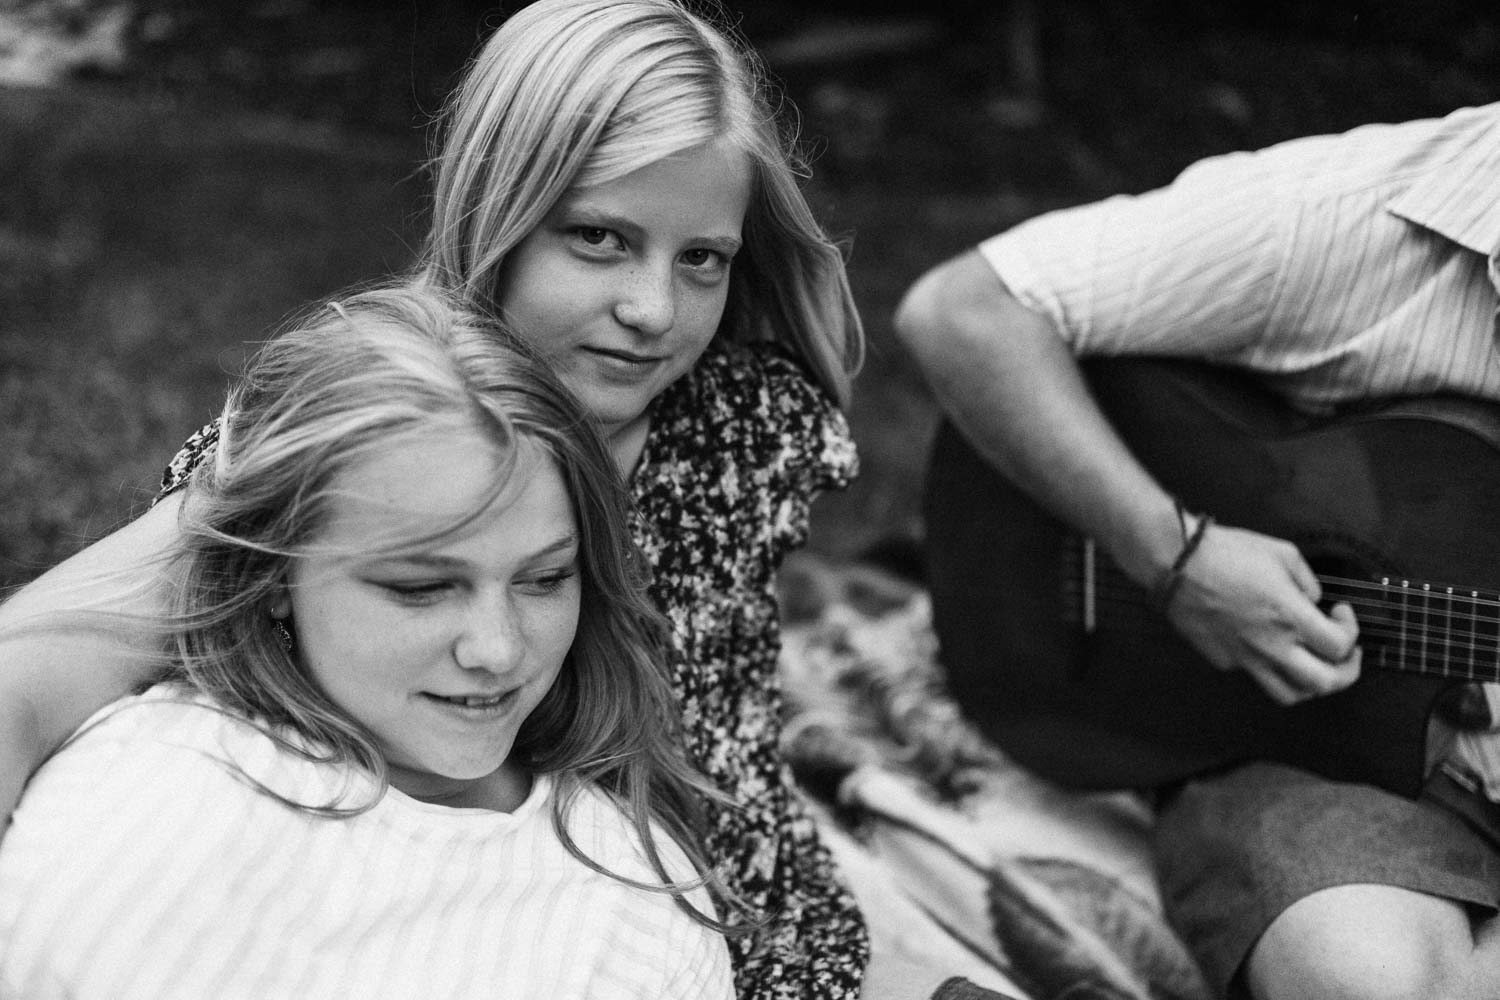 candid-black-and-white-photo-of-freckled-girls-in-back-yard-salt-lake-city-utah